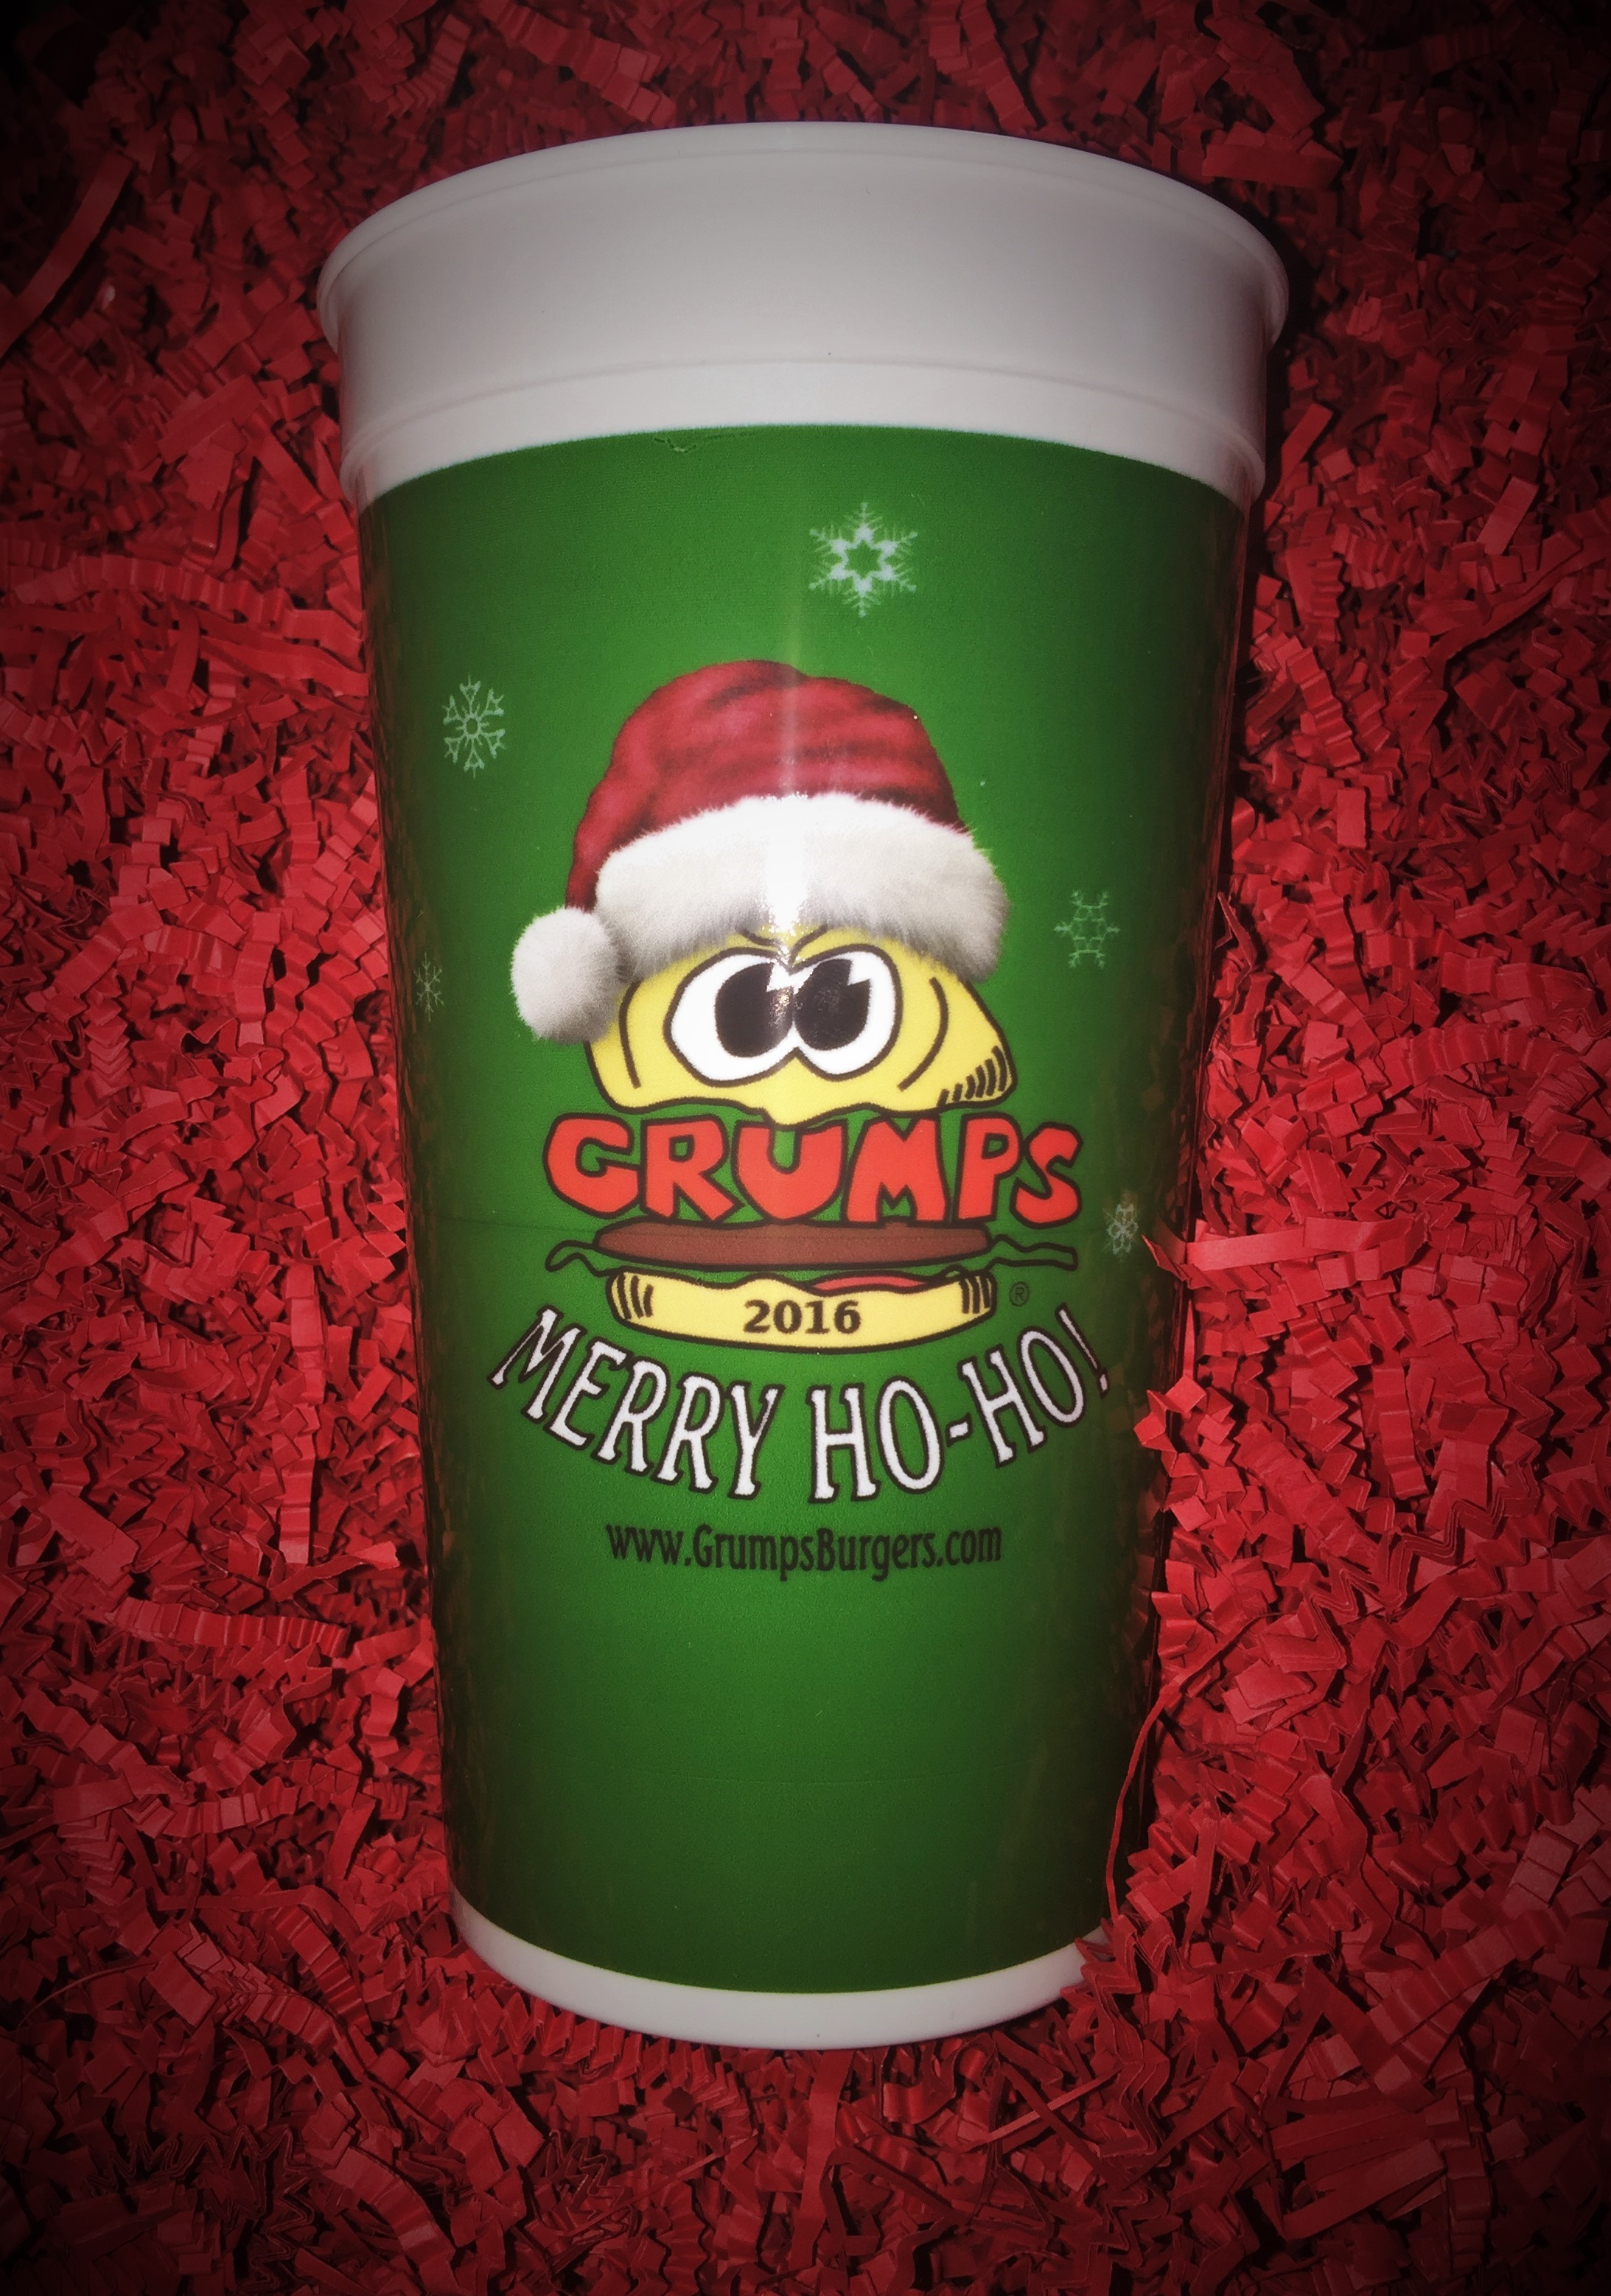 Merry Ho-Ho Limited Edition Cups